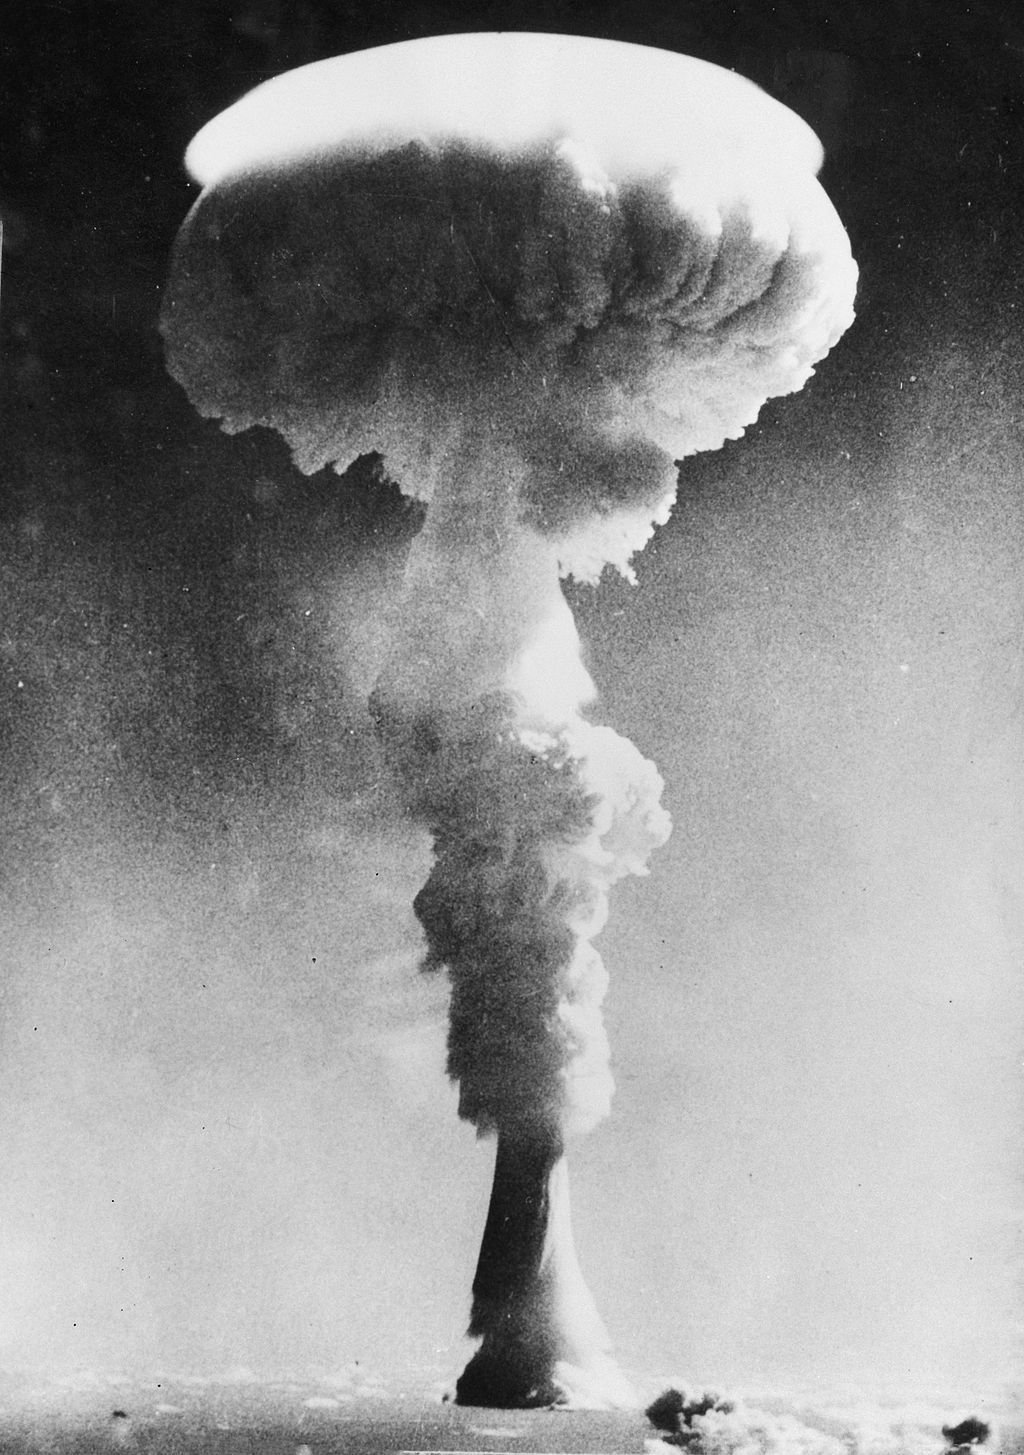 Britain Decides to Develop Thermonuclear Weapons